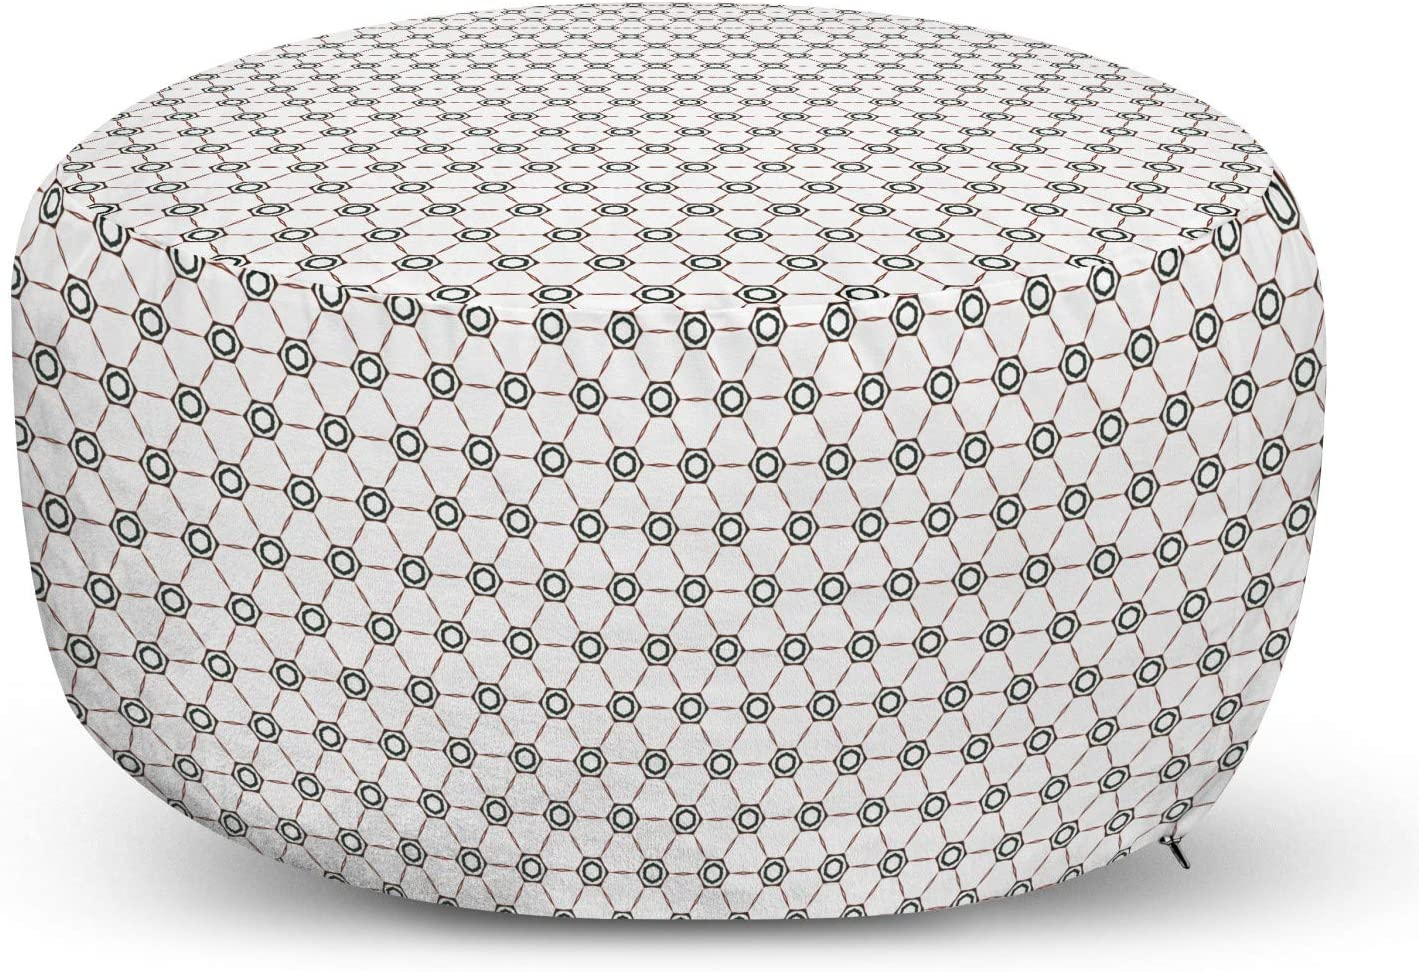 Lunarable Abstract Pouf Cover Max 86% OFF Repetitive Zipper Max 40% OFF with Intertwine